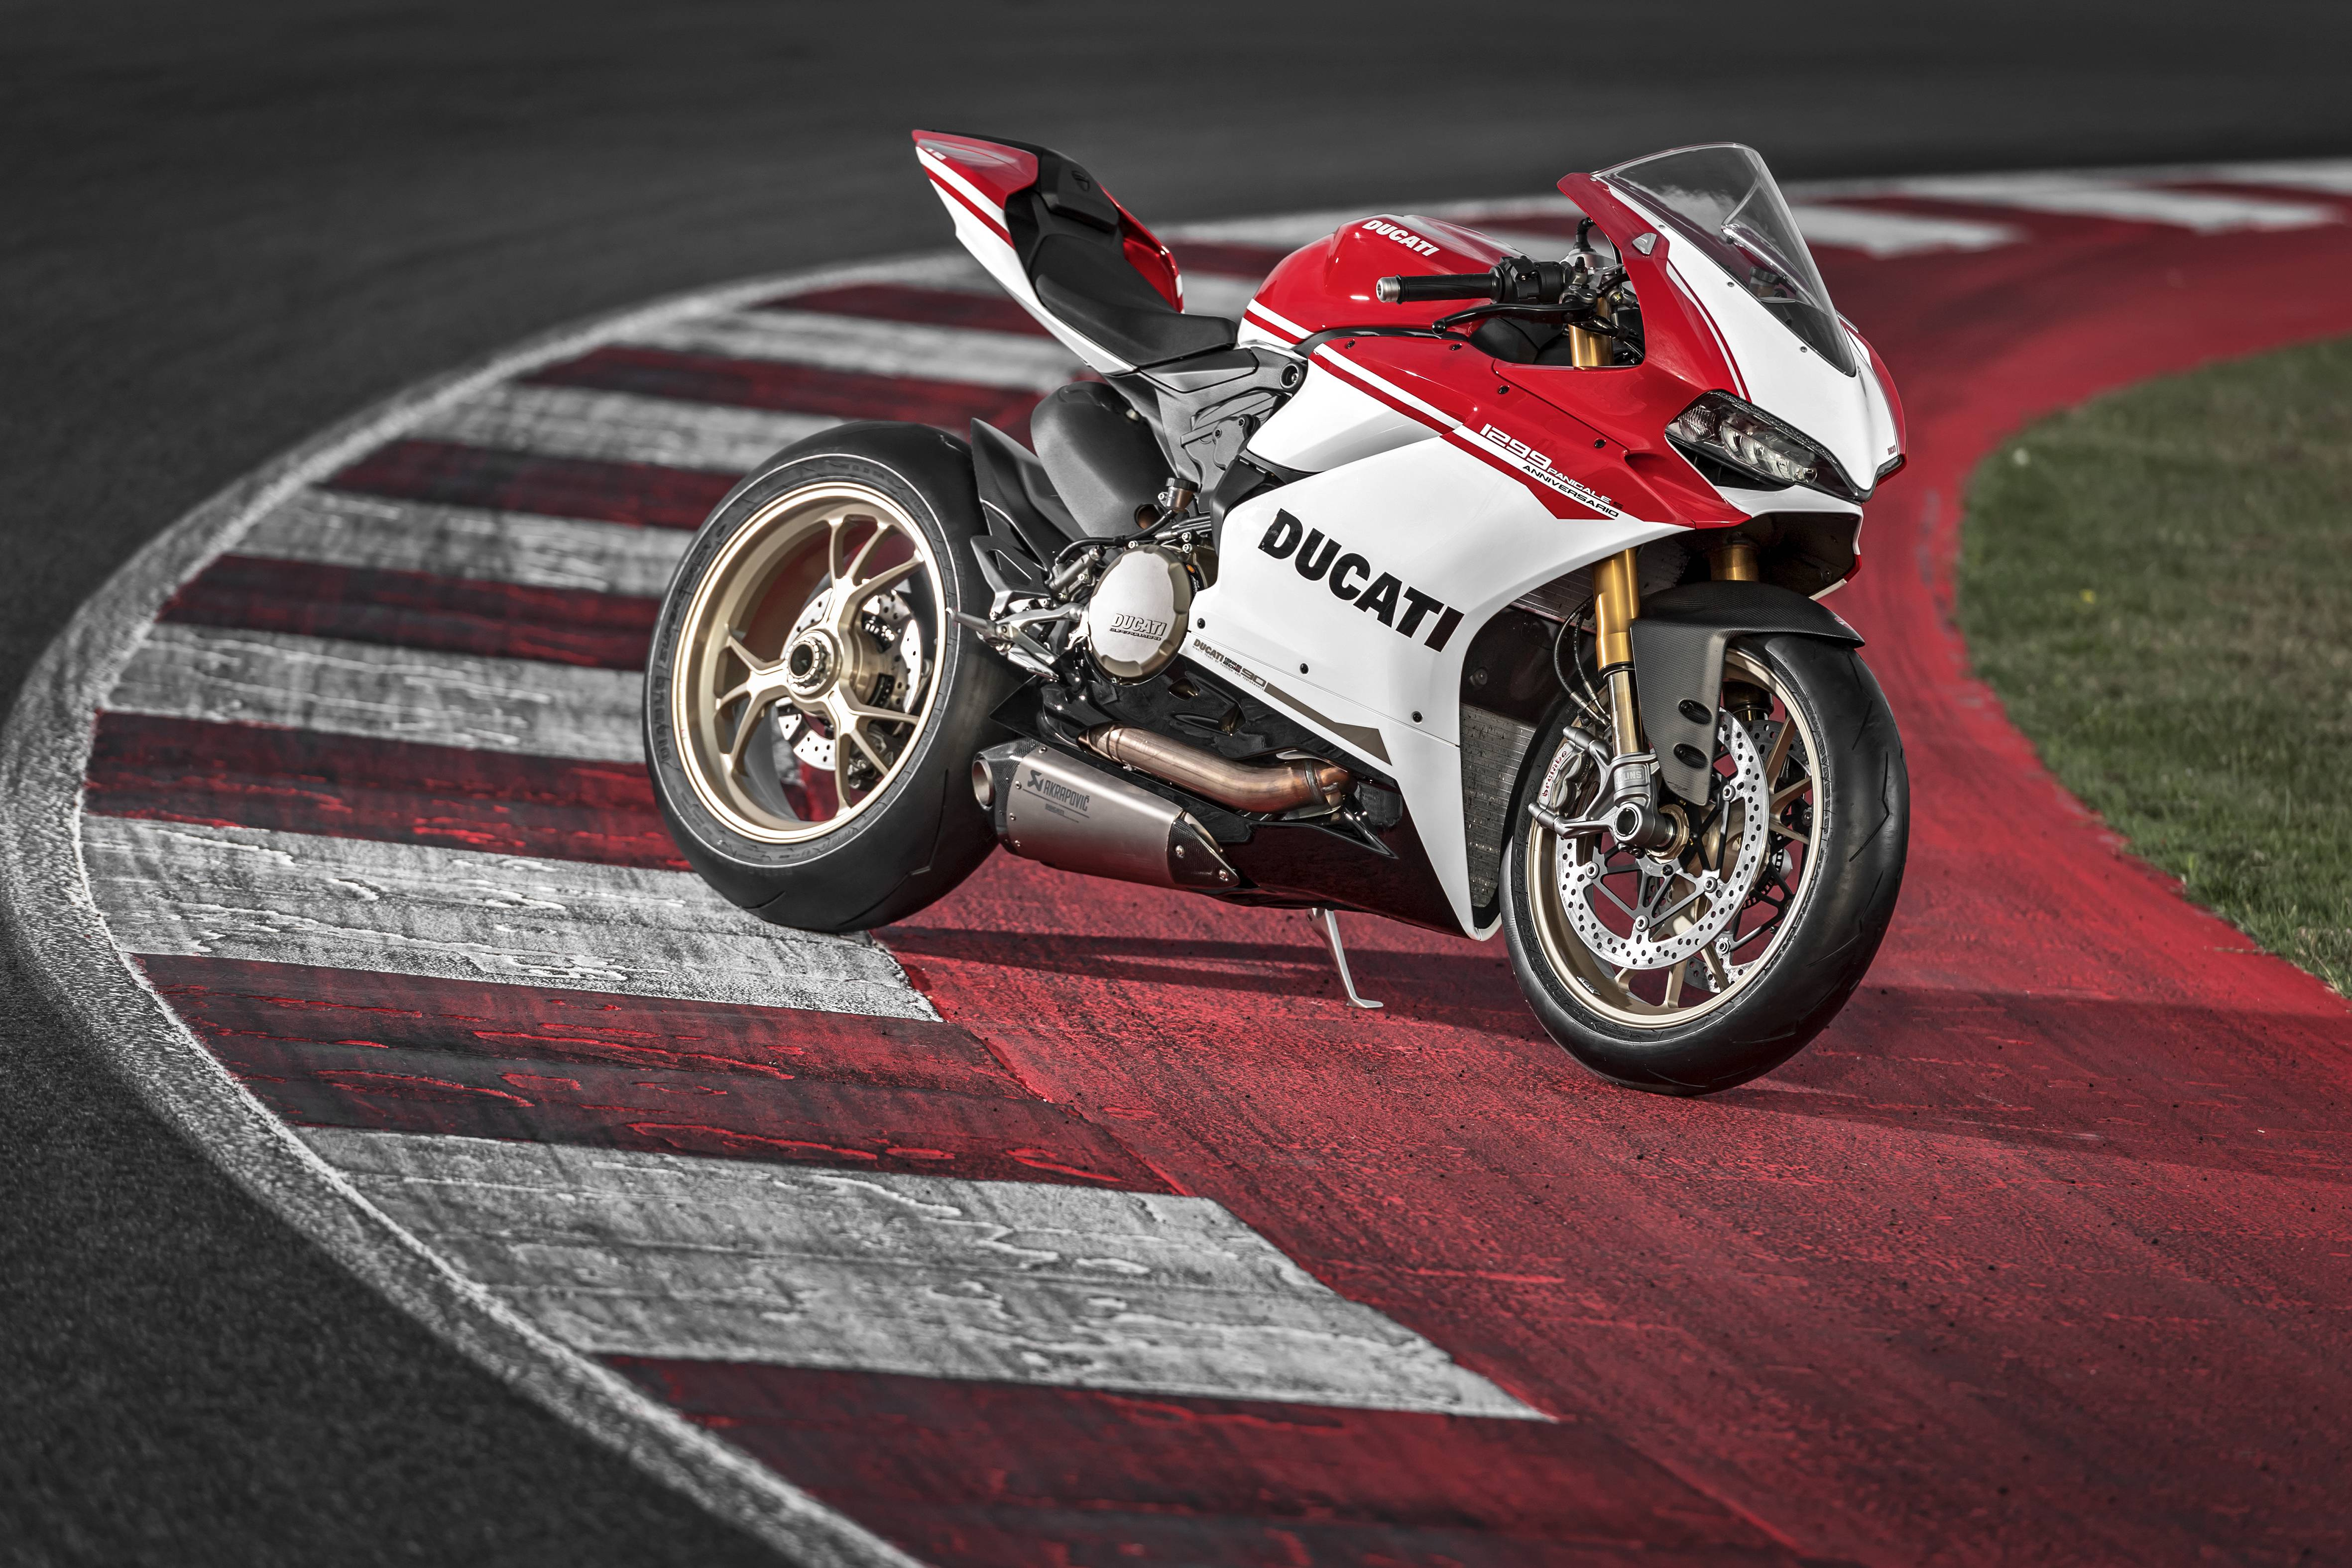 ducati 1299 panigale s 2016 hd bikes 4k wallpapers images backgrounds photos and pictures. Black Bedroom Furniture Sets. Home Design Ideas